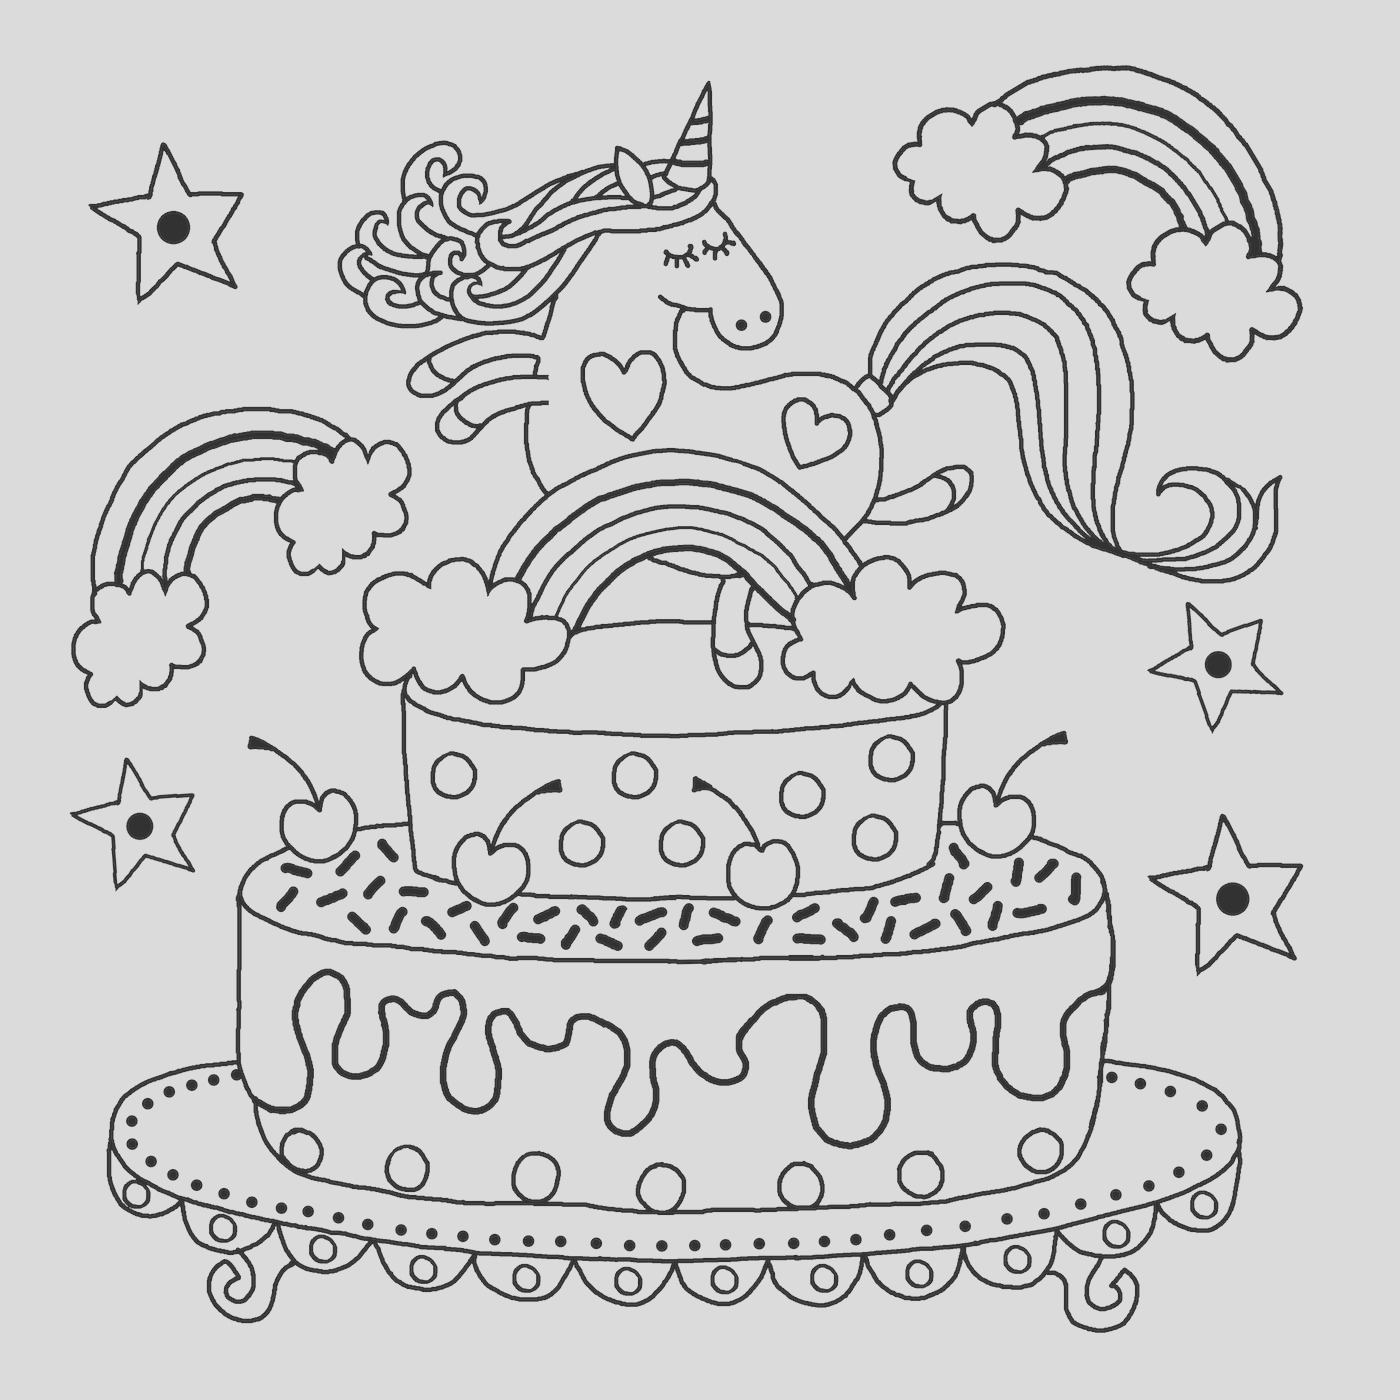 unicorn colouring book pages 2